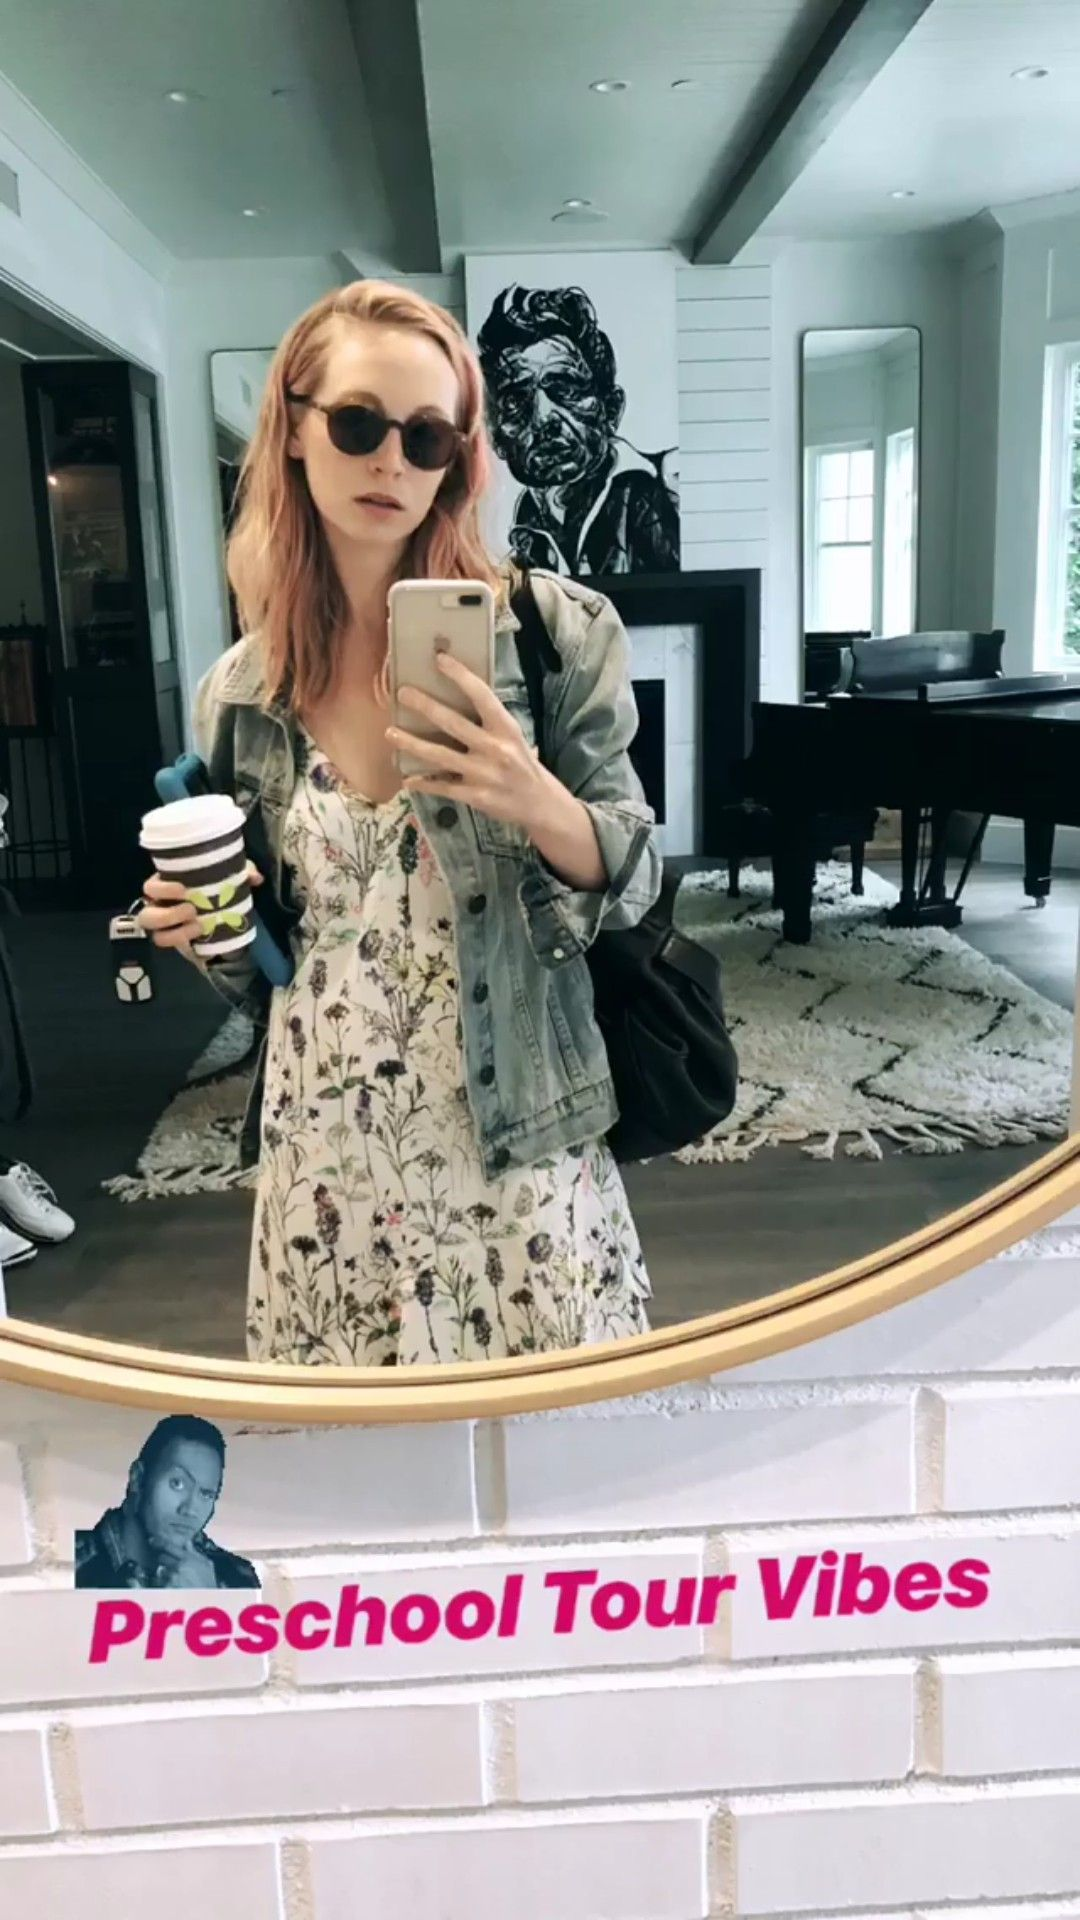 Selfie Candice Accola King naked (86 photo), Tits, Is a cute, Instagram, braless 2020